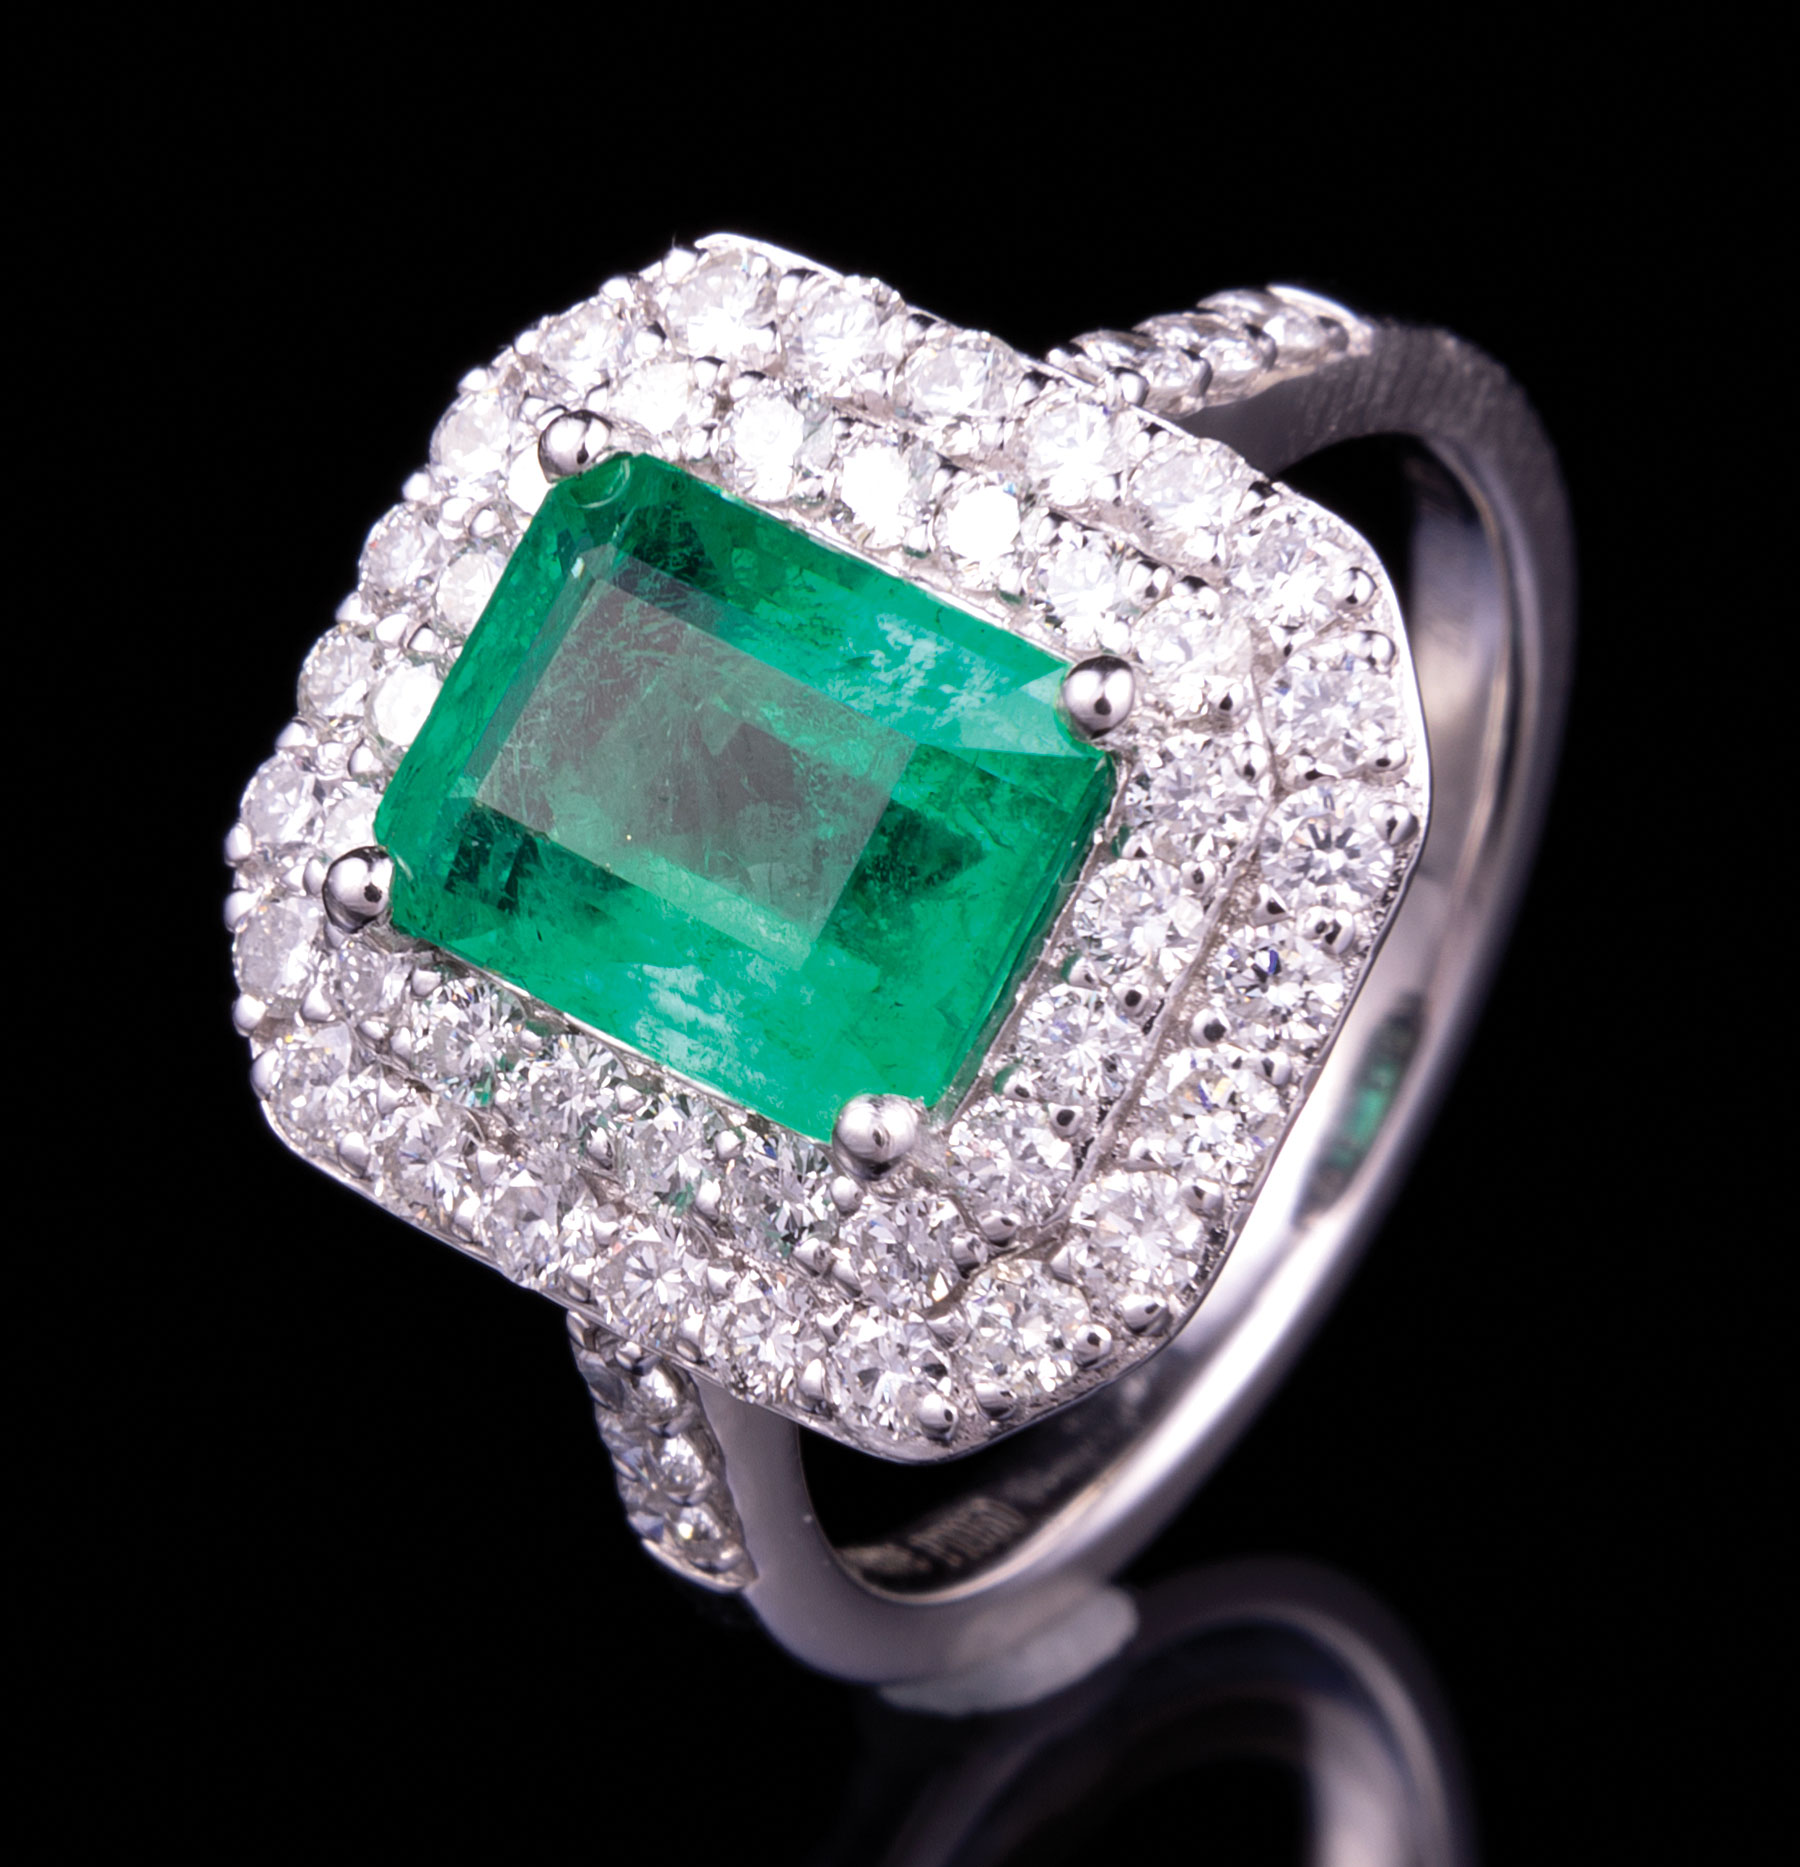 Lot 584 - Platinum, Emerald and Diamond Ring , prong set rectangular step cut natural emerald, 8.80 x 7.00 x